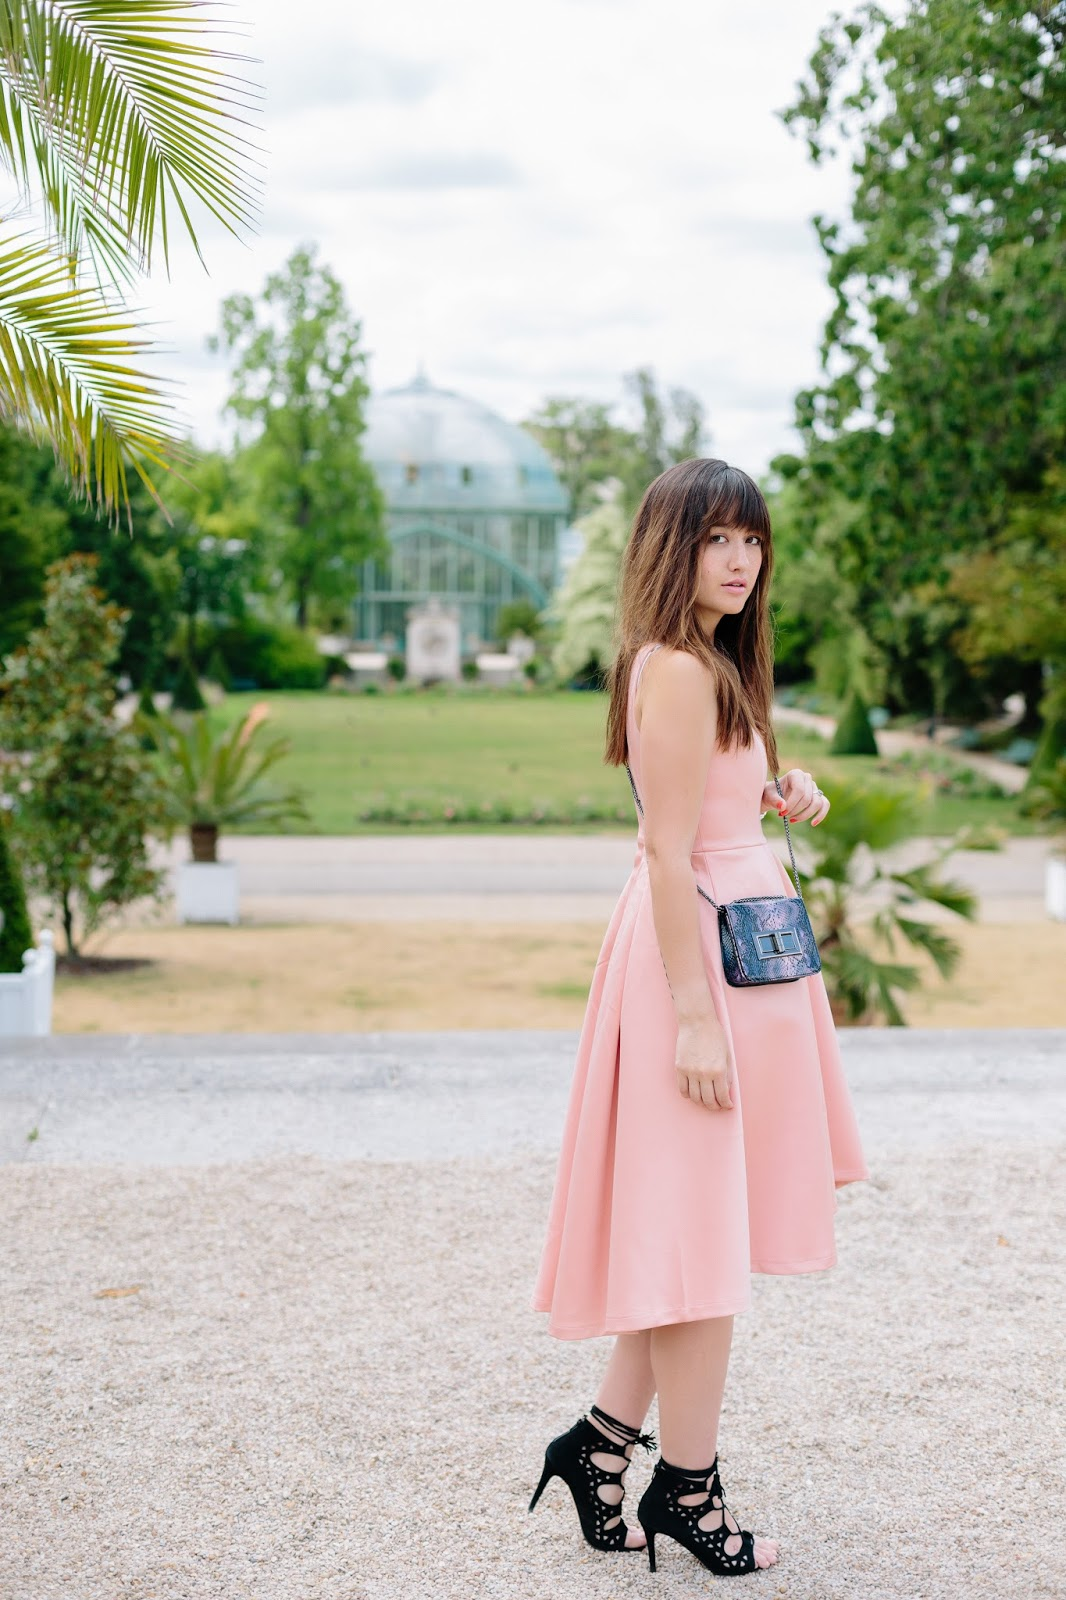 Paris botanical garden, Look, Summer look, Chicwish, Chic style